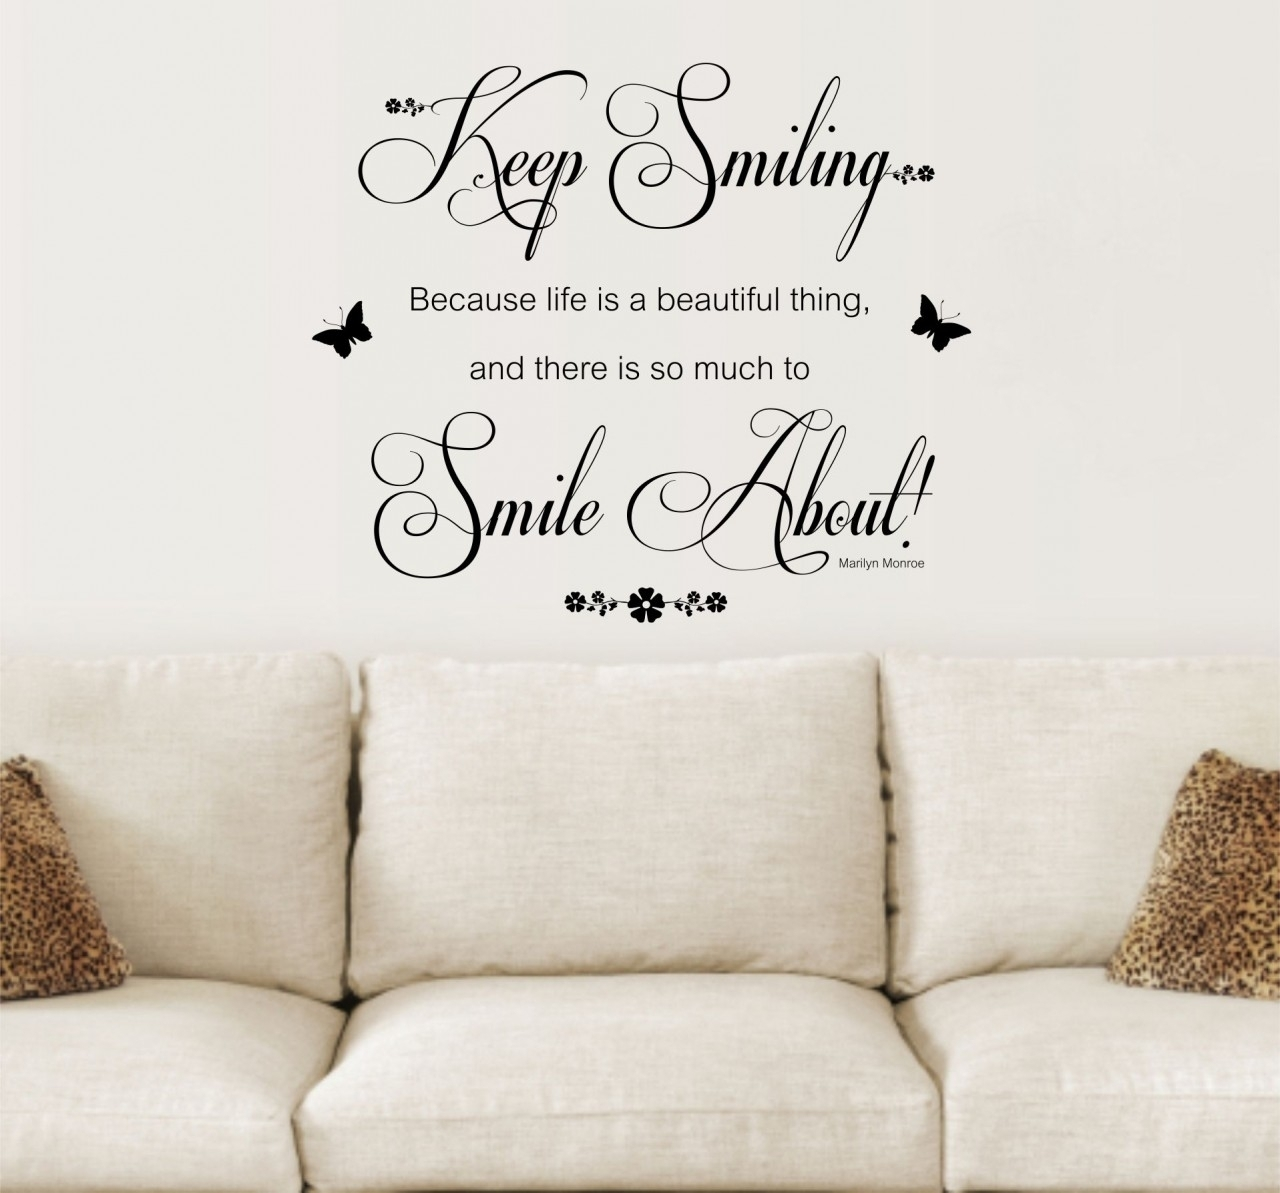 Awesome Home Decor Sayings Walls Gallery | Wall Decoration 2018 Intended For Wall Art Sayings (View 7 of 20)